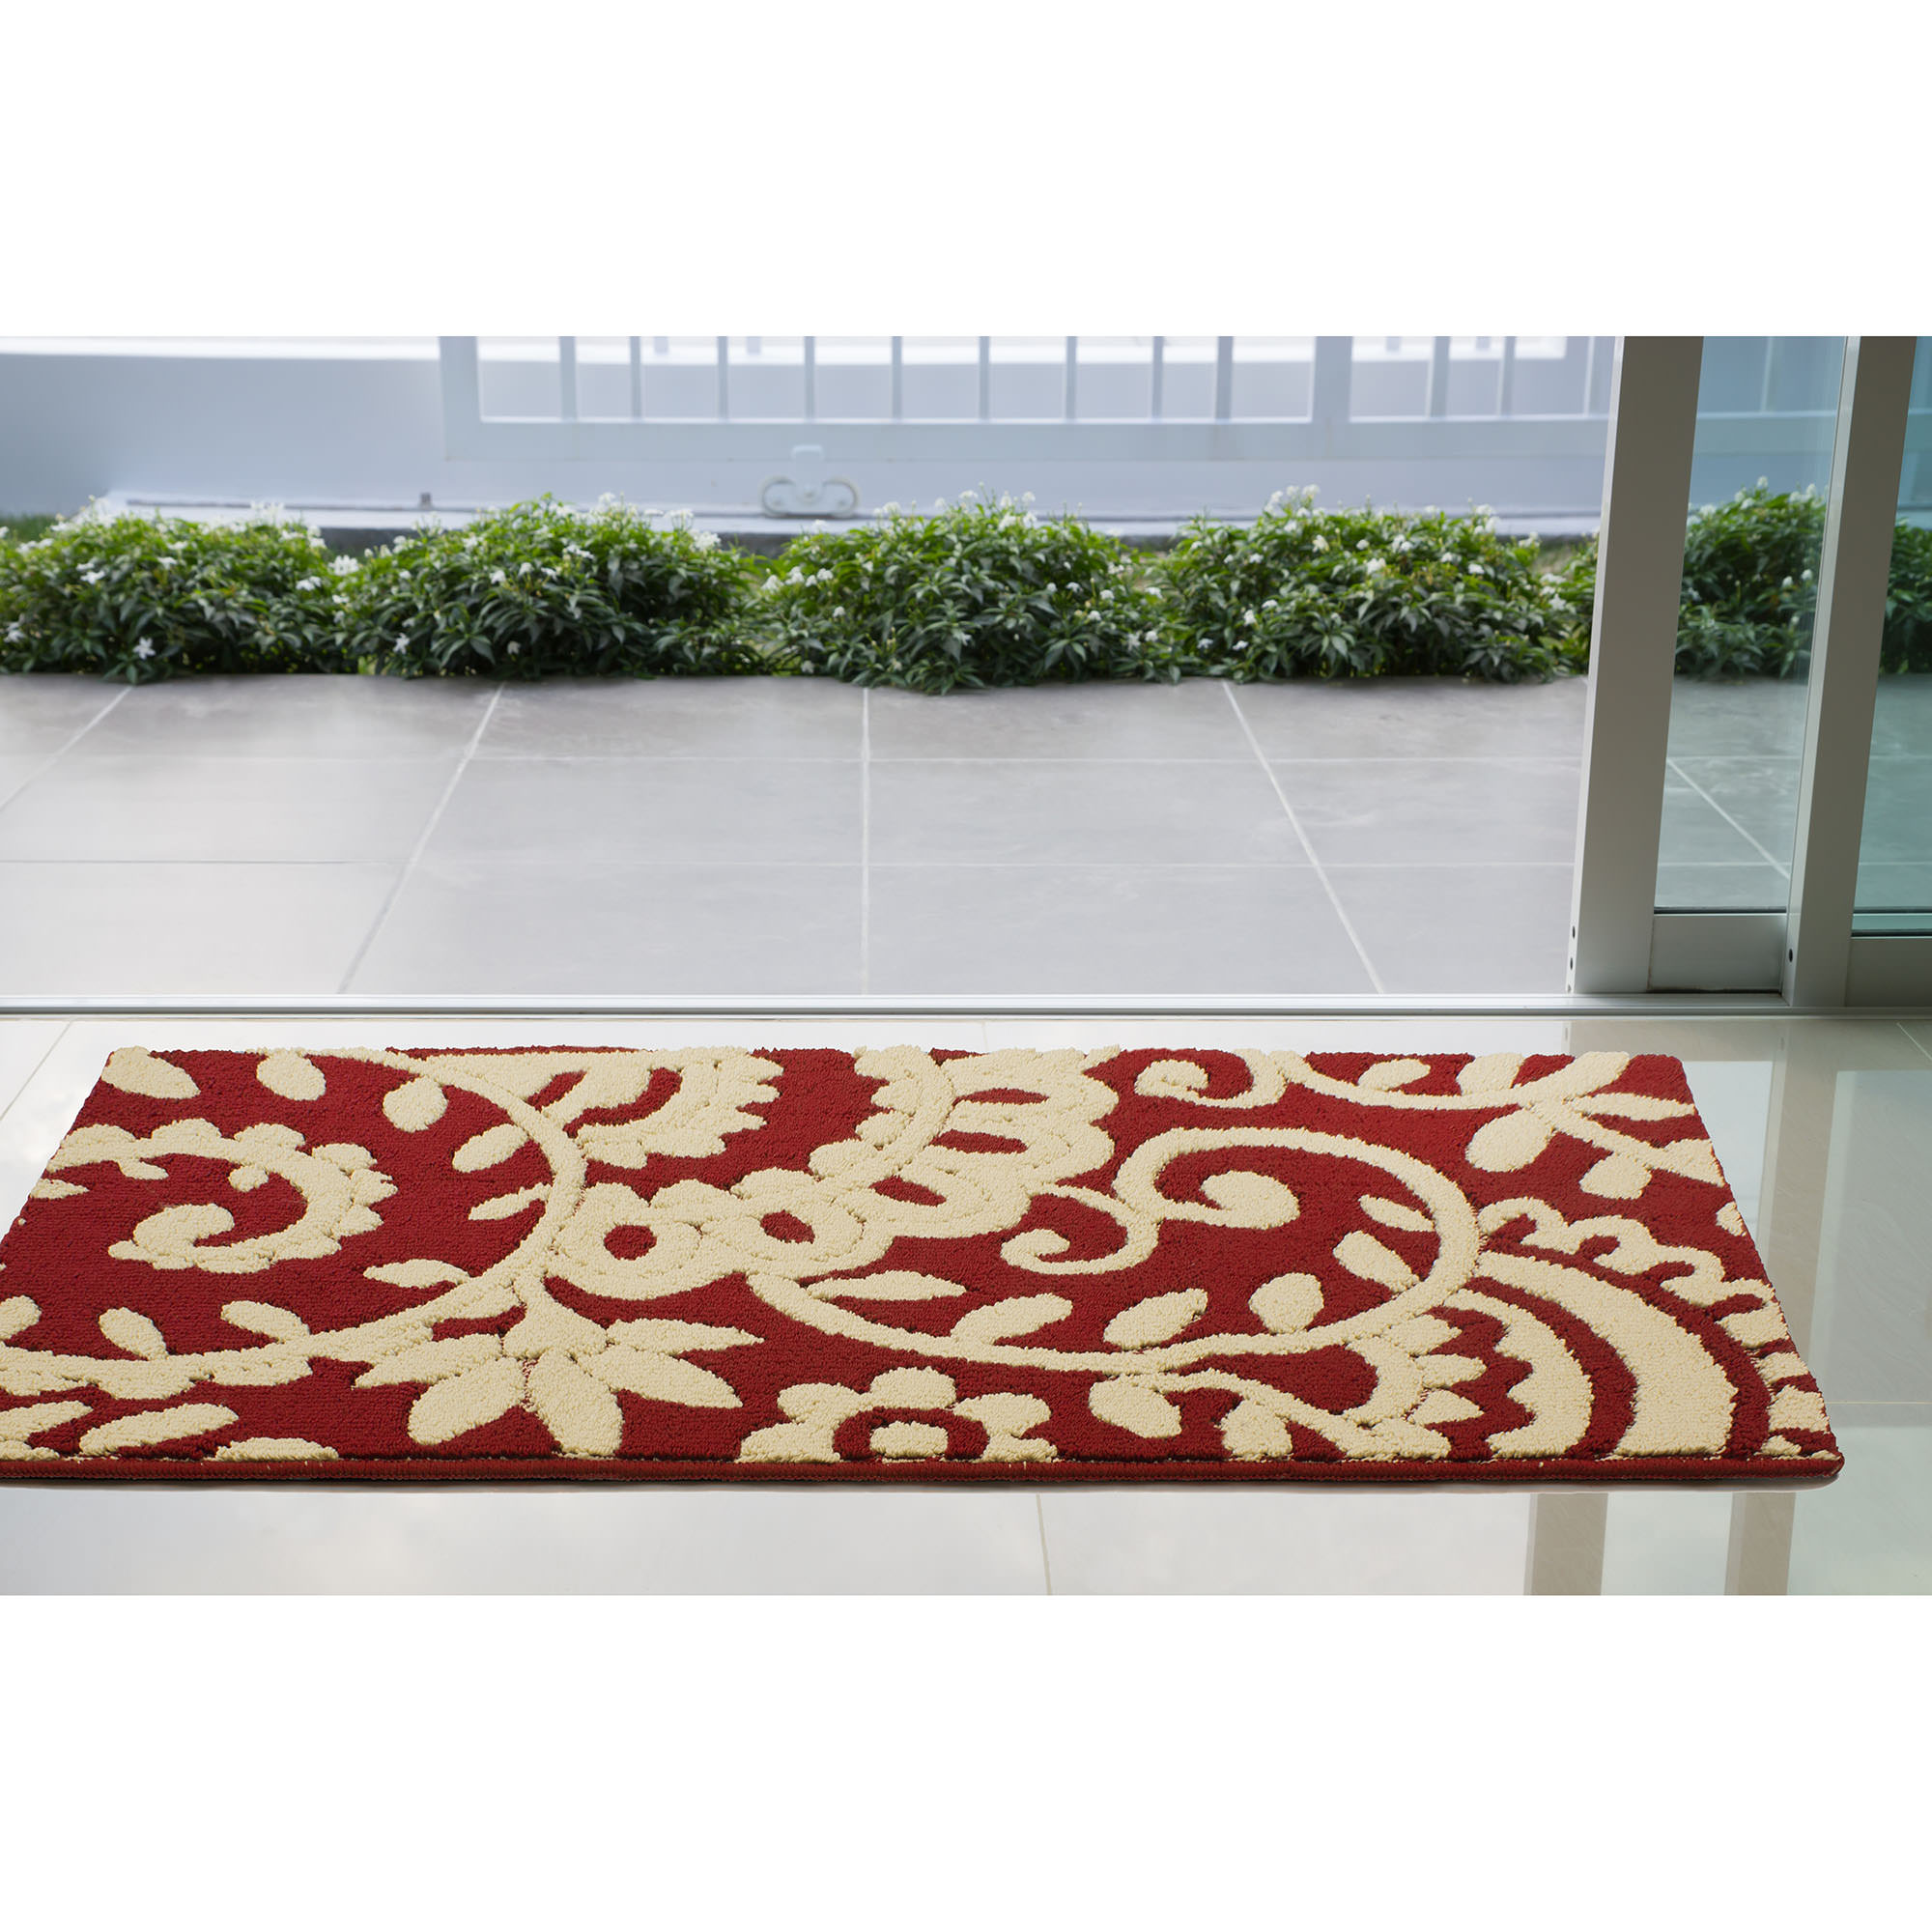 Jean Pierre Adele 30 x 50 in. Loop Accent Rug, Barn/Berber